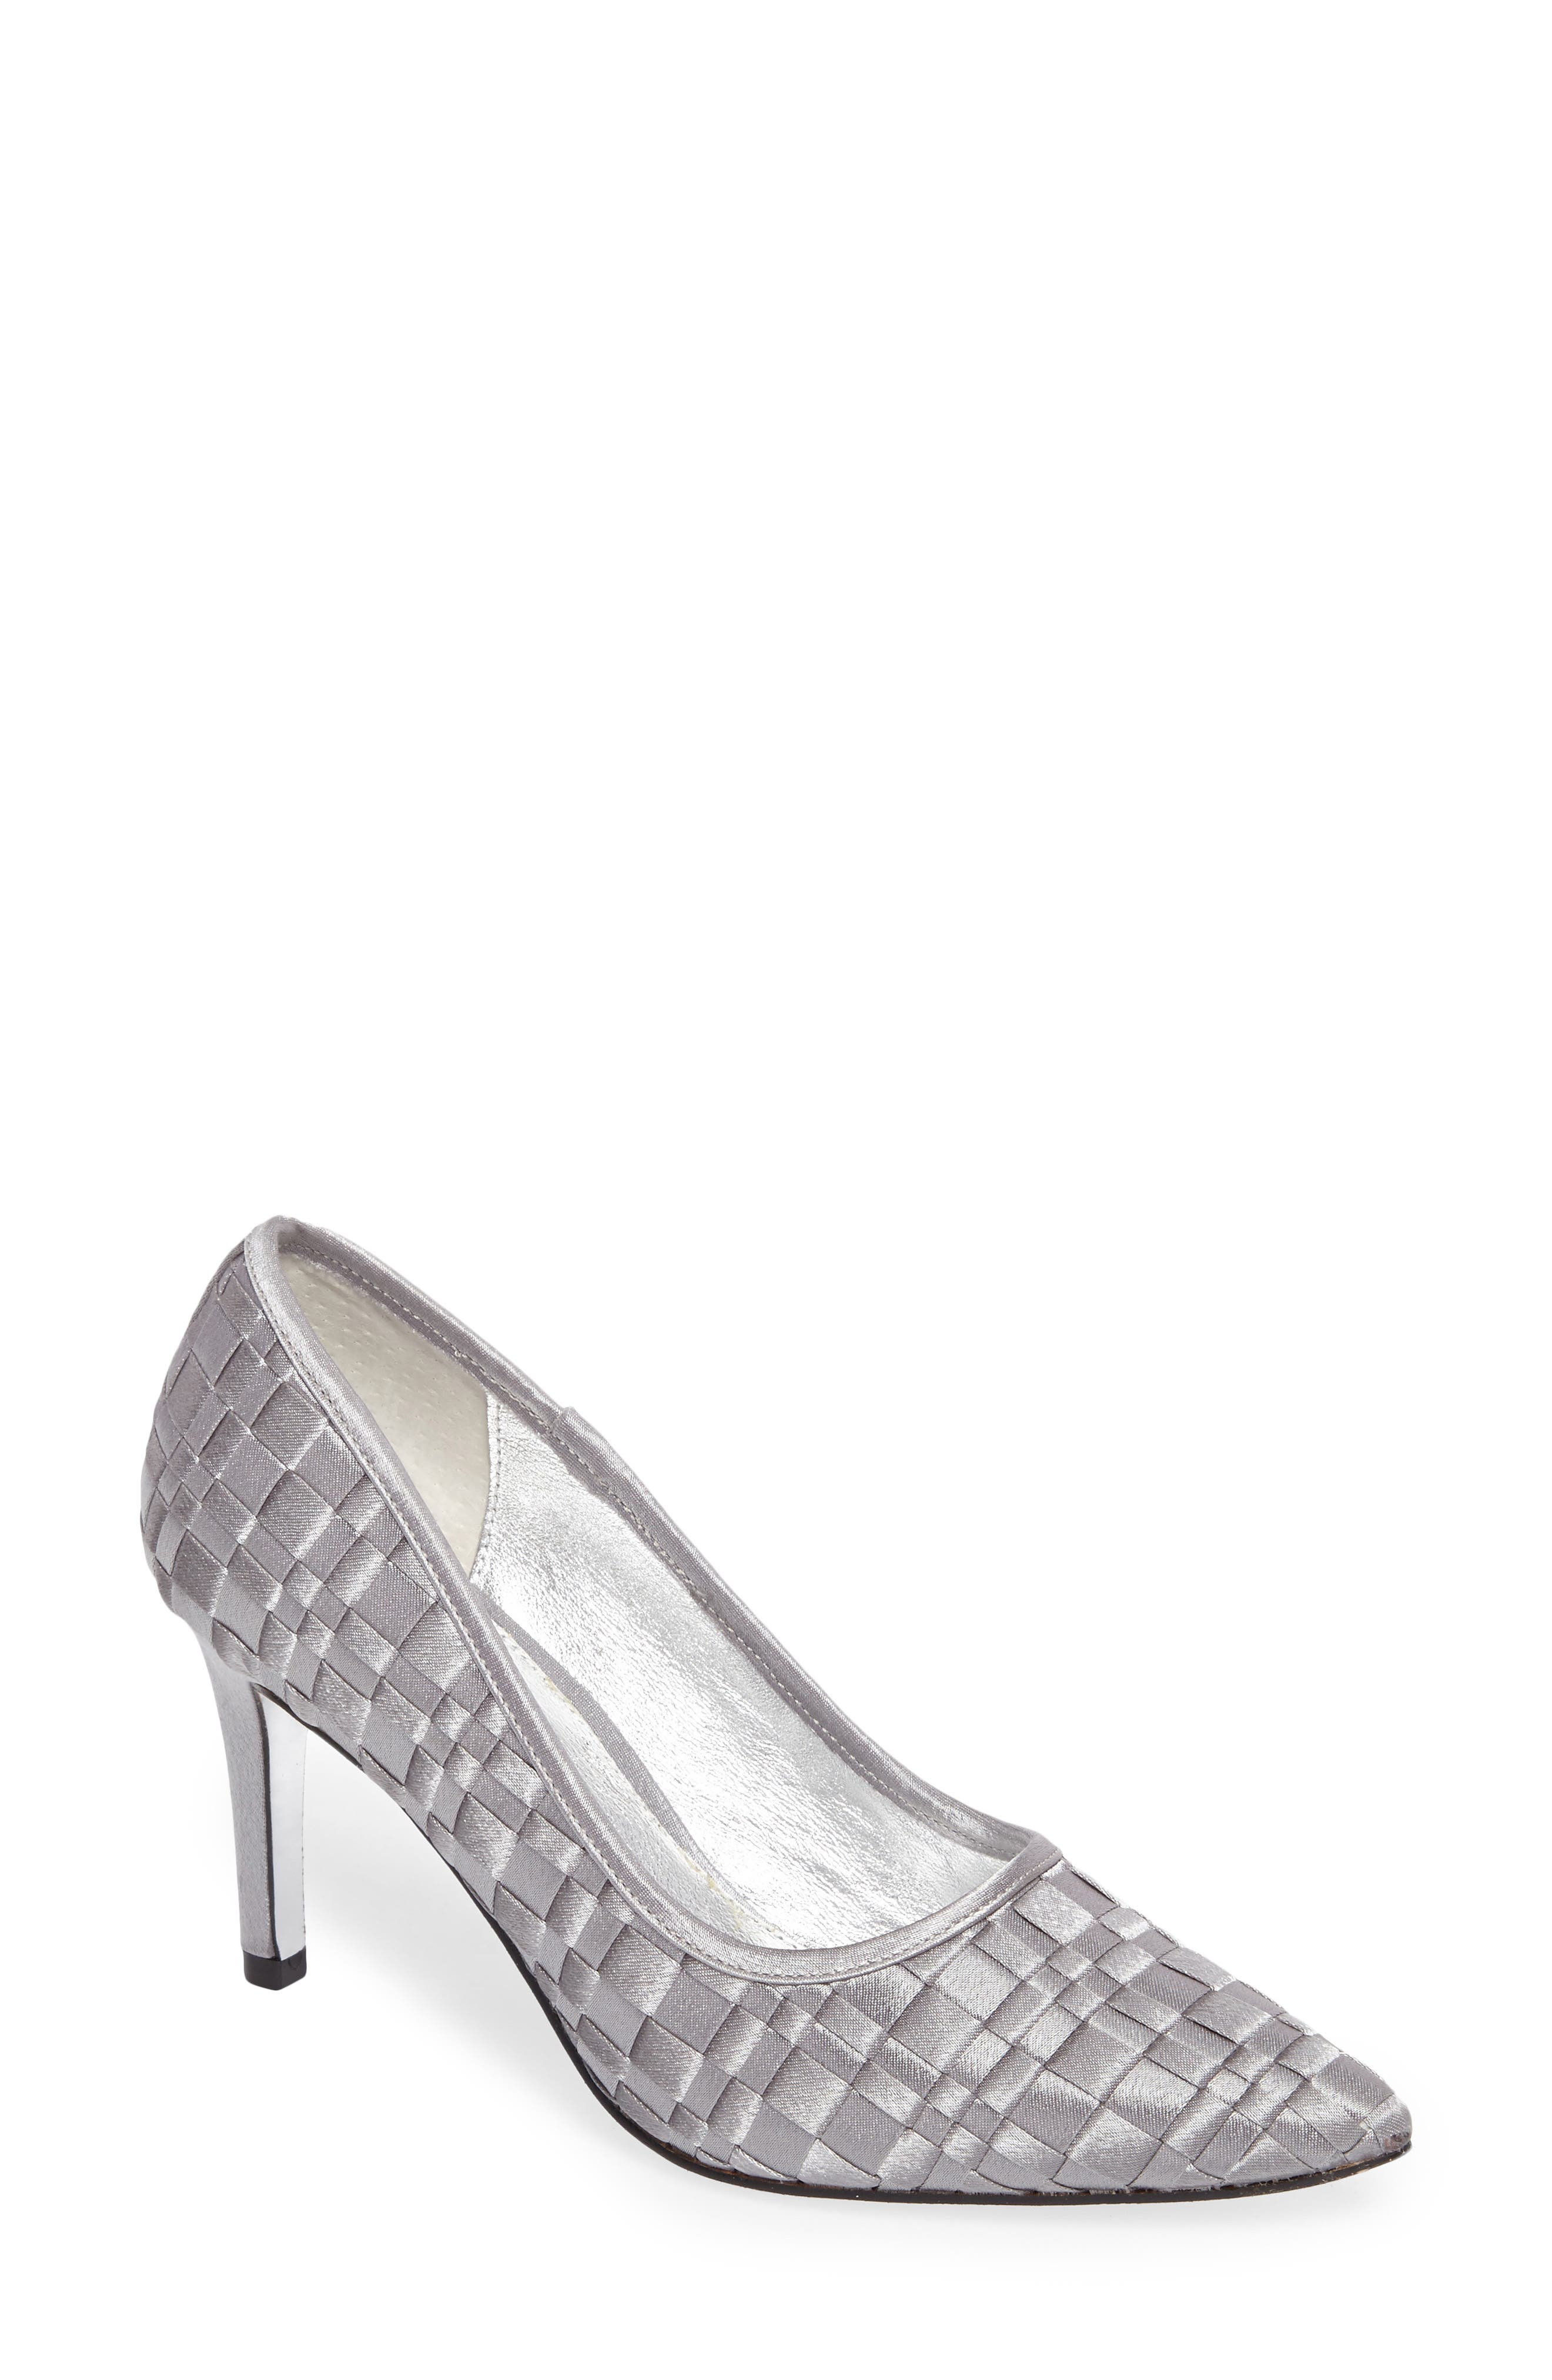 Hasting Pointy Toe Pump,                         Main,                         color, 020